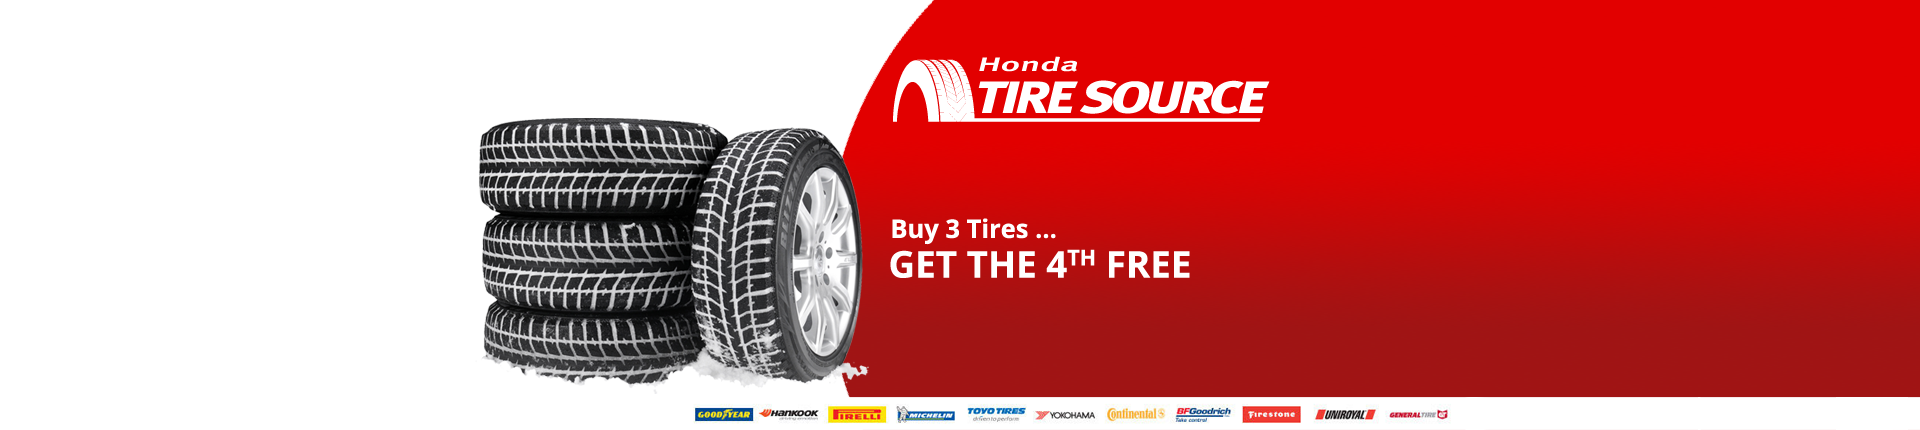 Winter Tires promotions